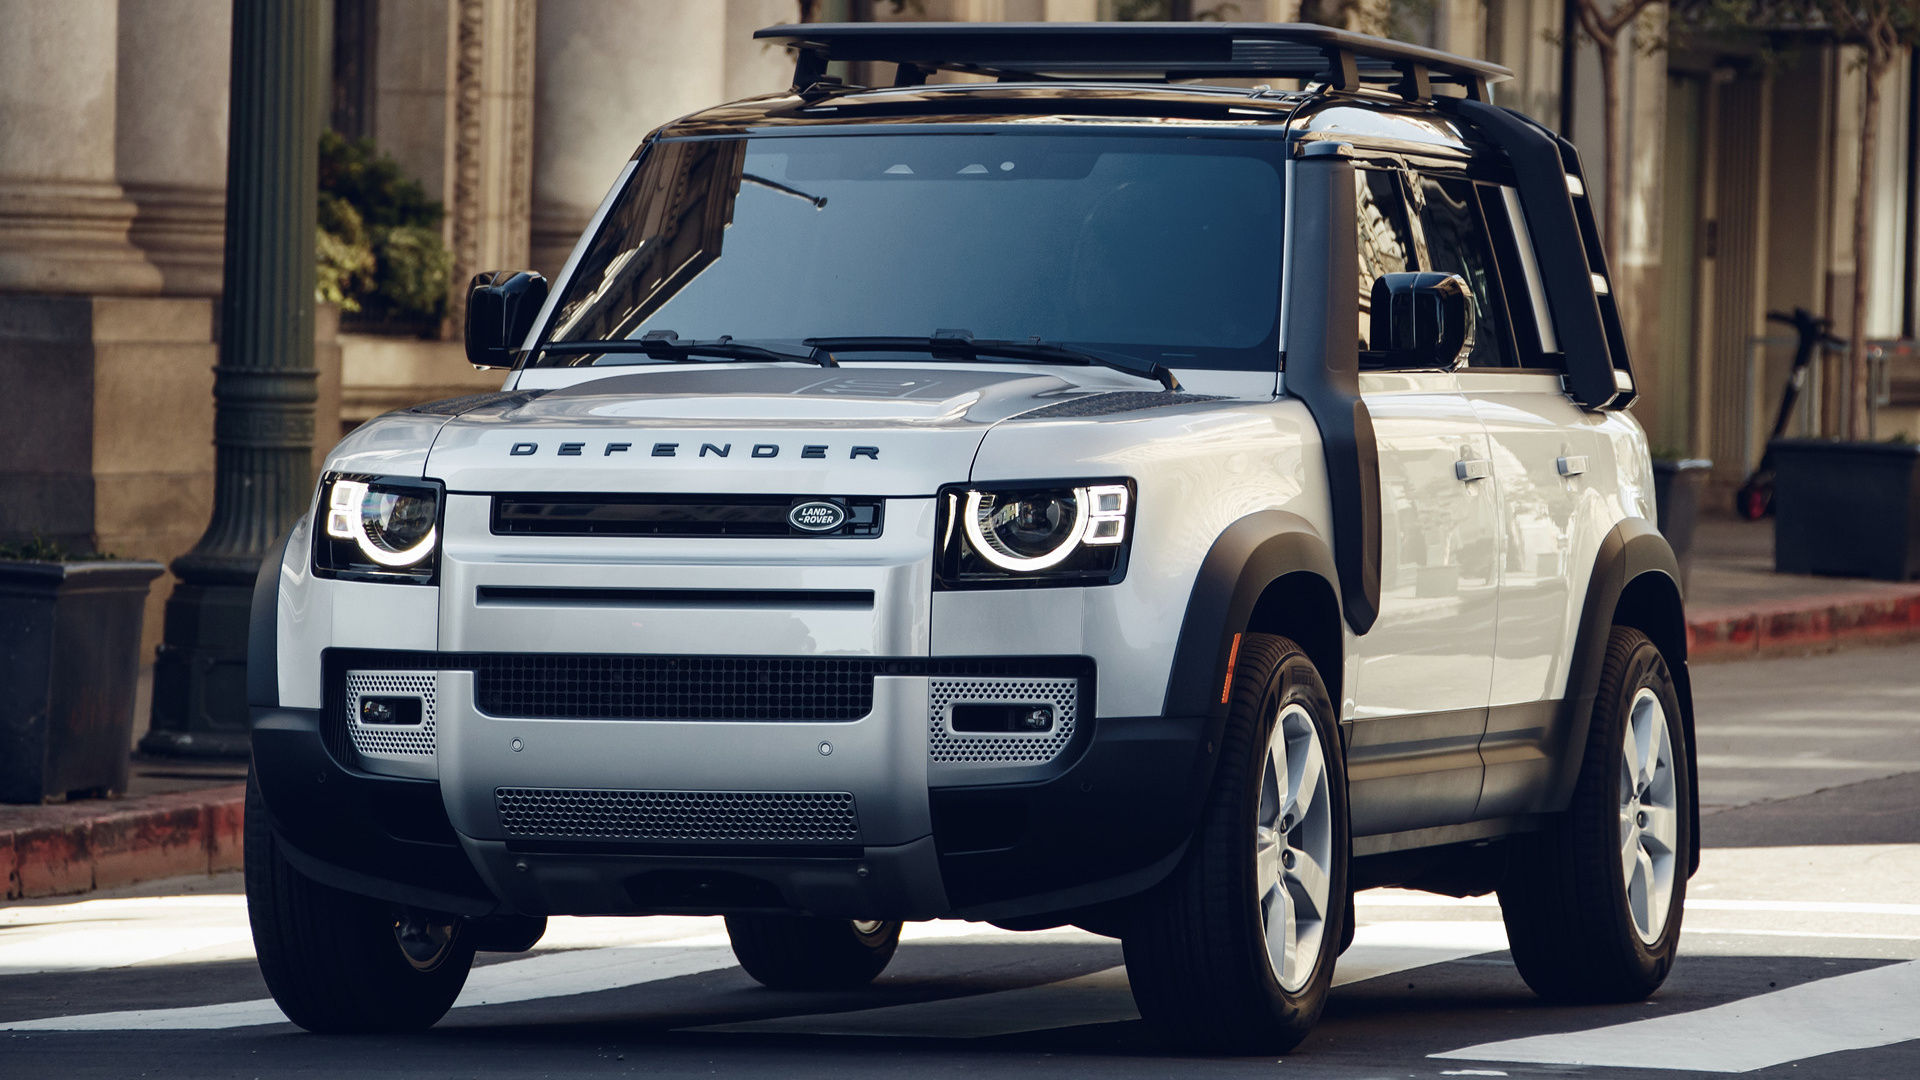 2021 Land Rover Defender SUV Front View